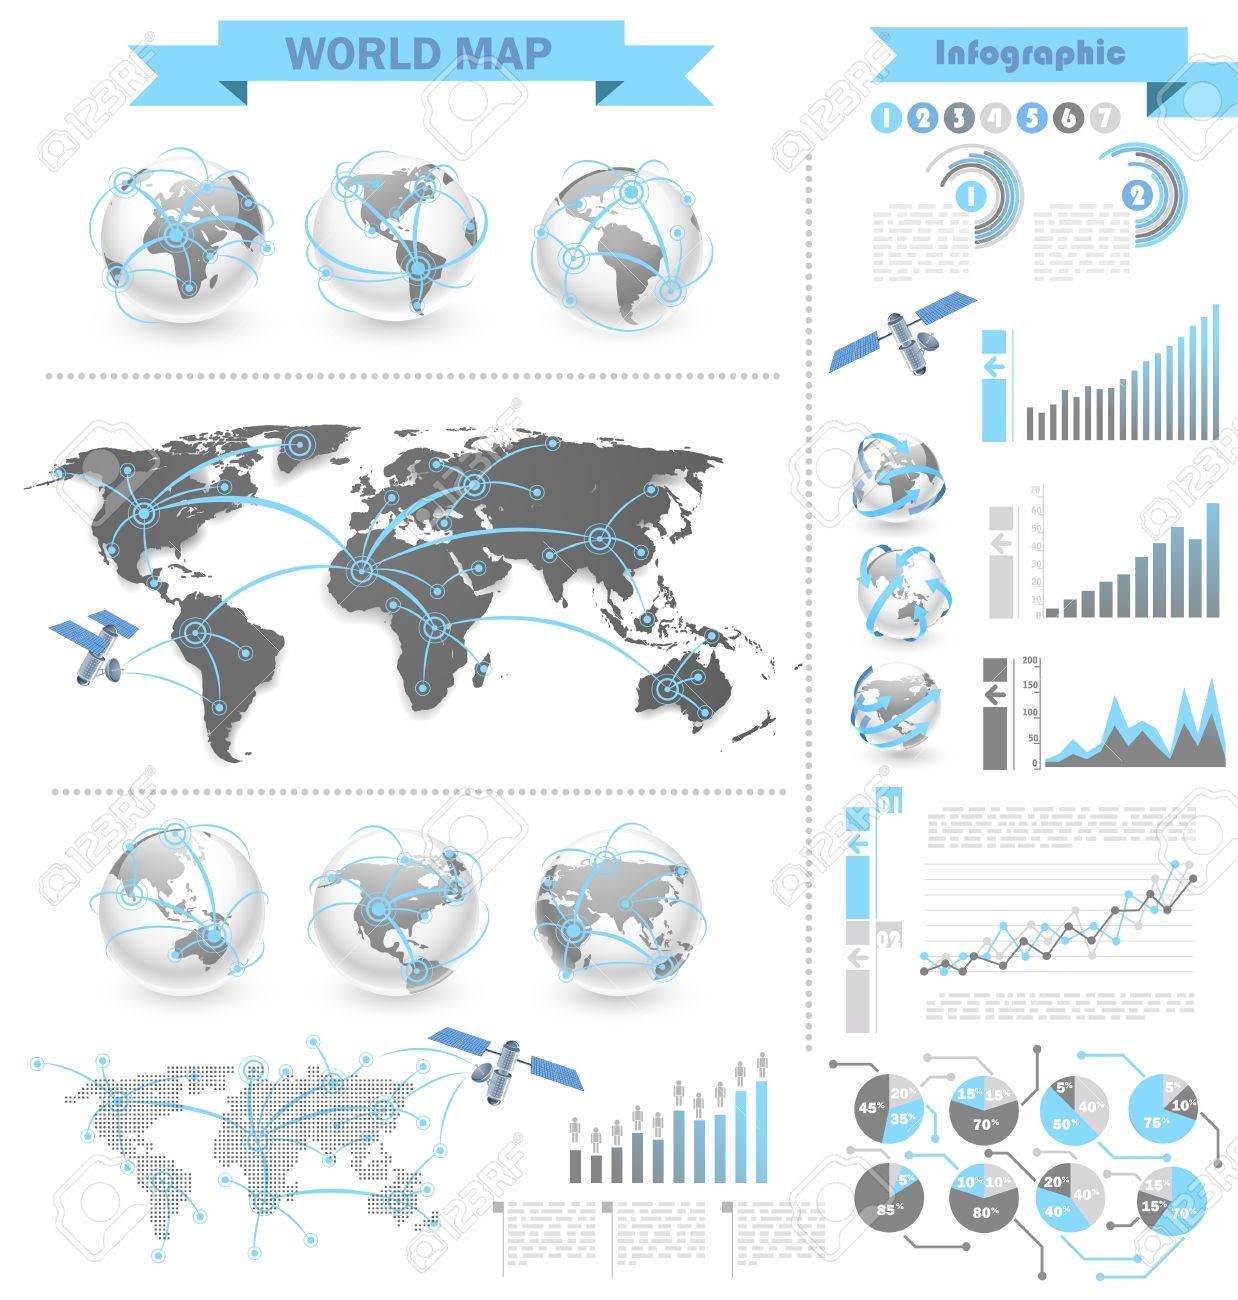 World map infographic royalty free cliparts vectors and stock vector world map infographic gumiabroncs Image collections